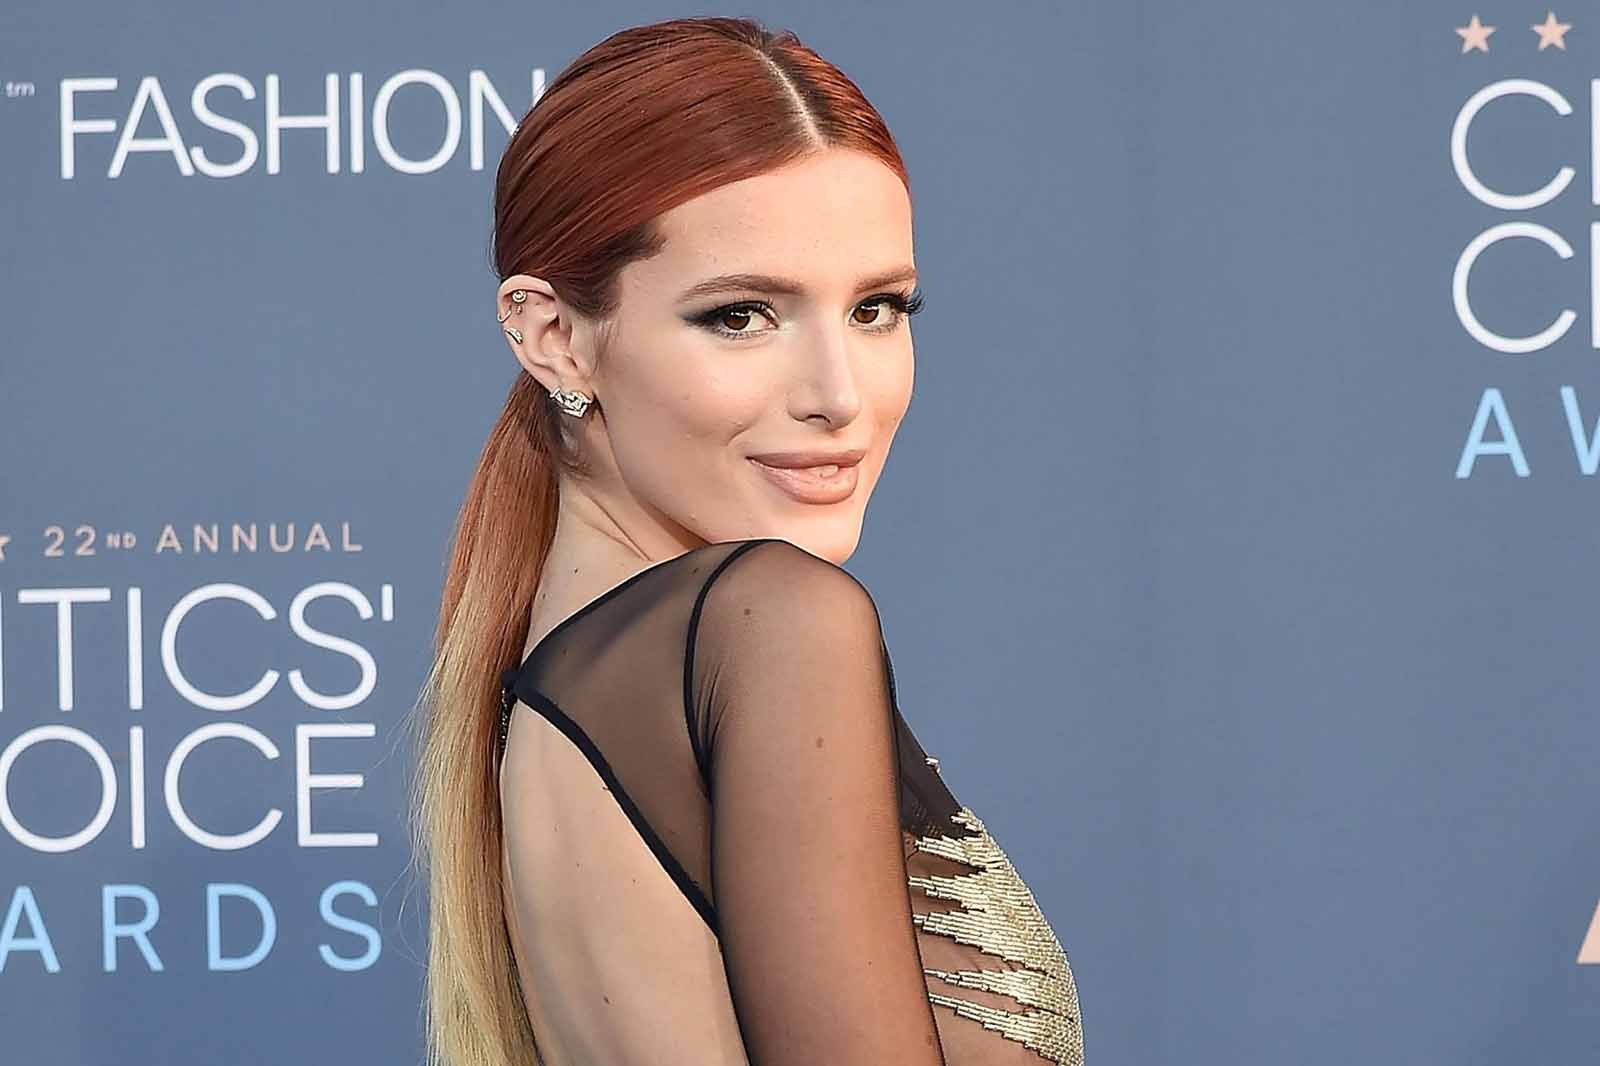 Bella Thorne increased her net worth by the millions this past month thanks to her OnlyFans account. But what can you get if you subscribe to it?